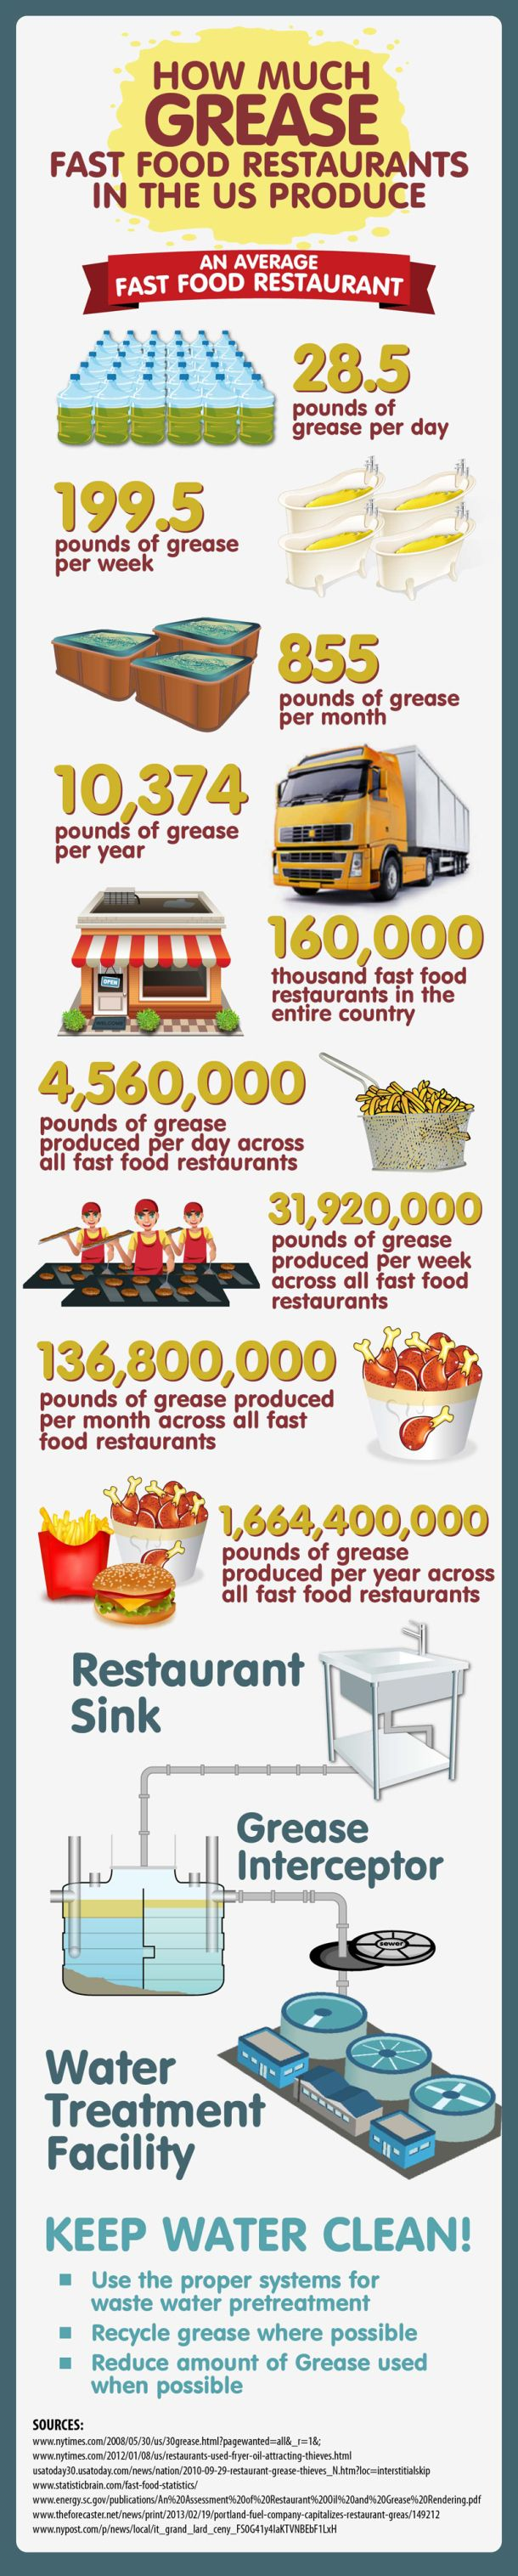 How Much Grease Fast Food Restaurants In The US Produce [INFOGRAPHIC]